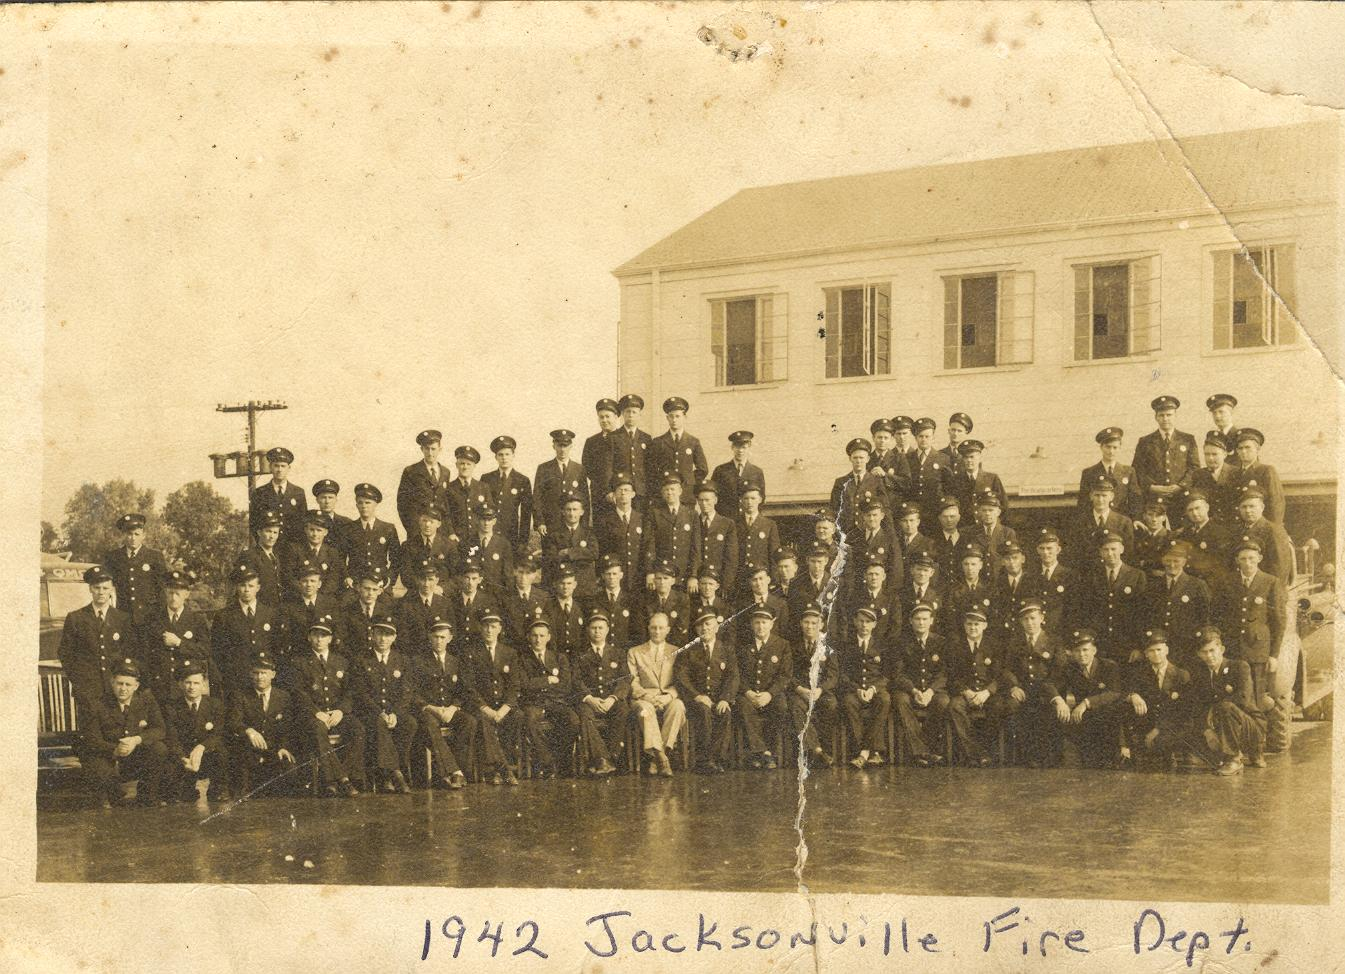 1942 Jacksonville Fire Department Group